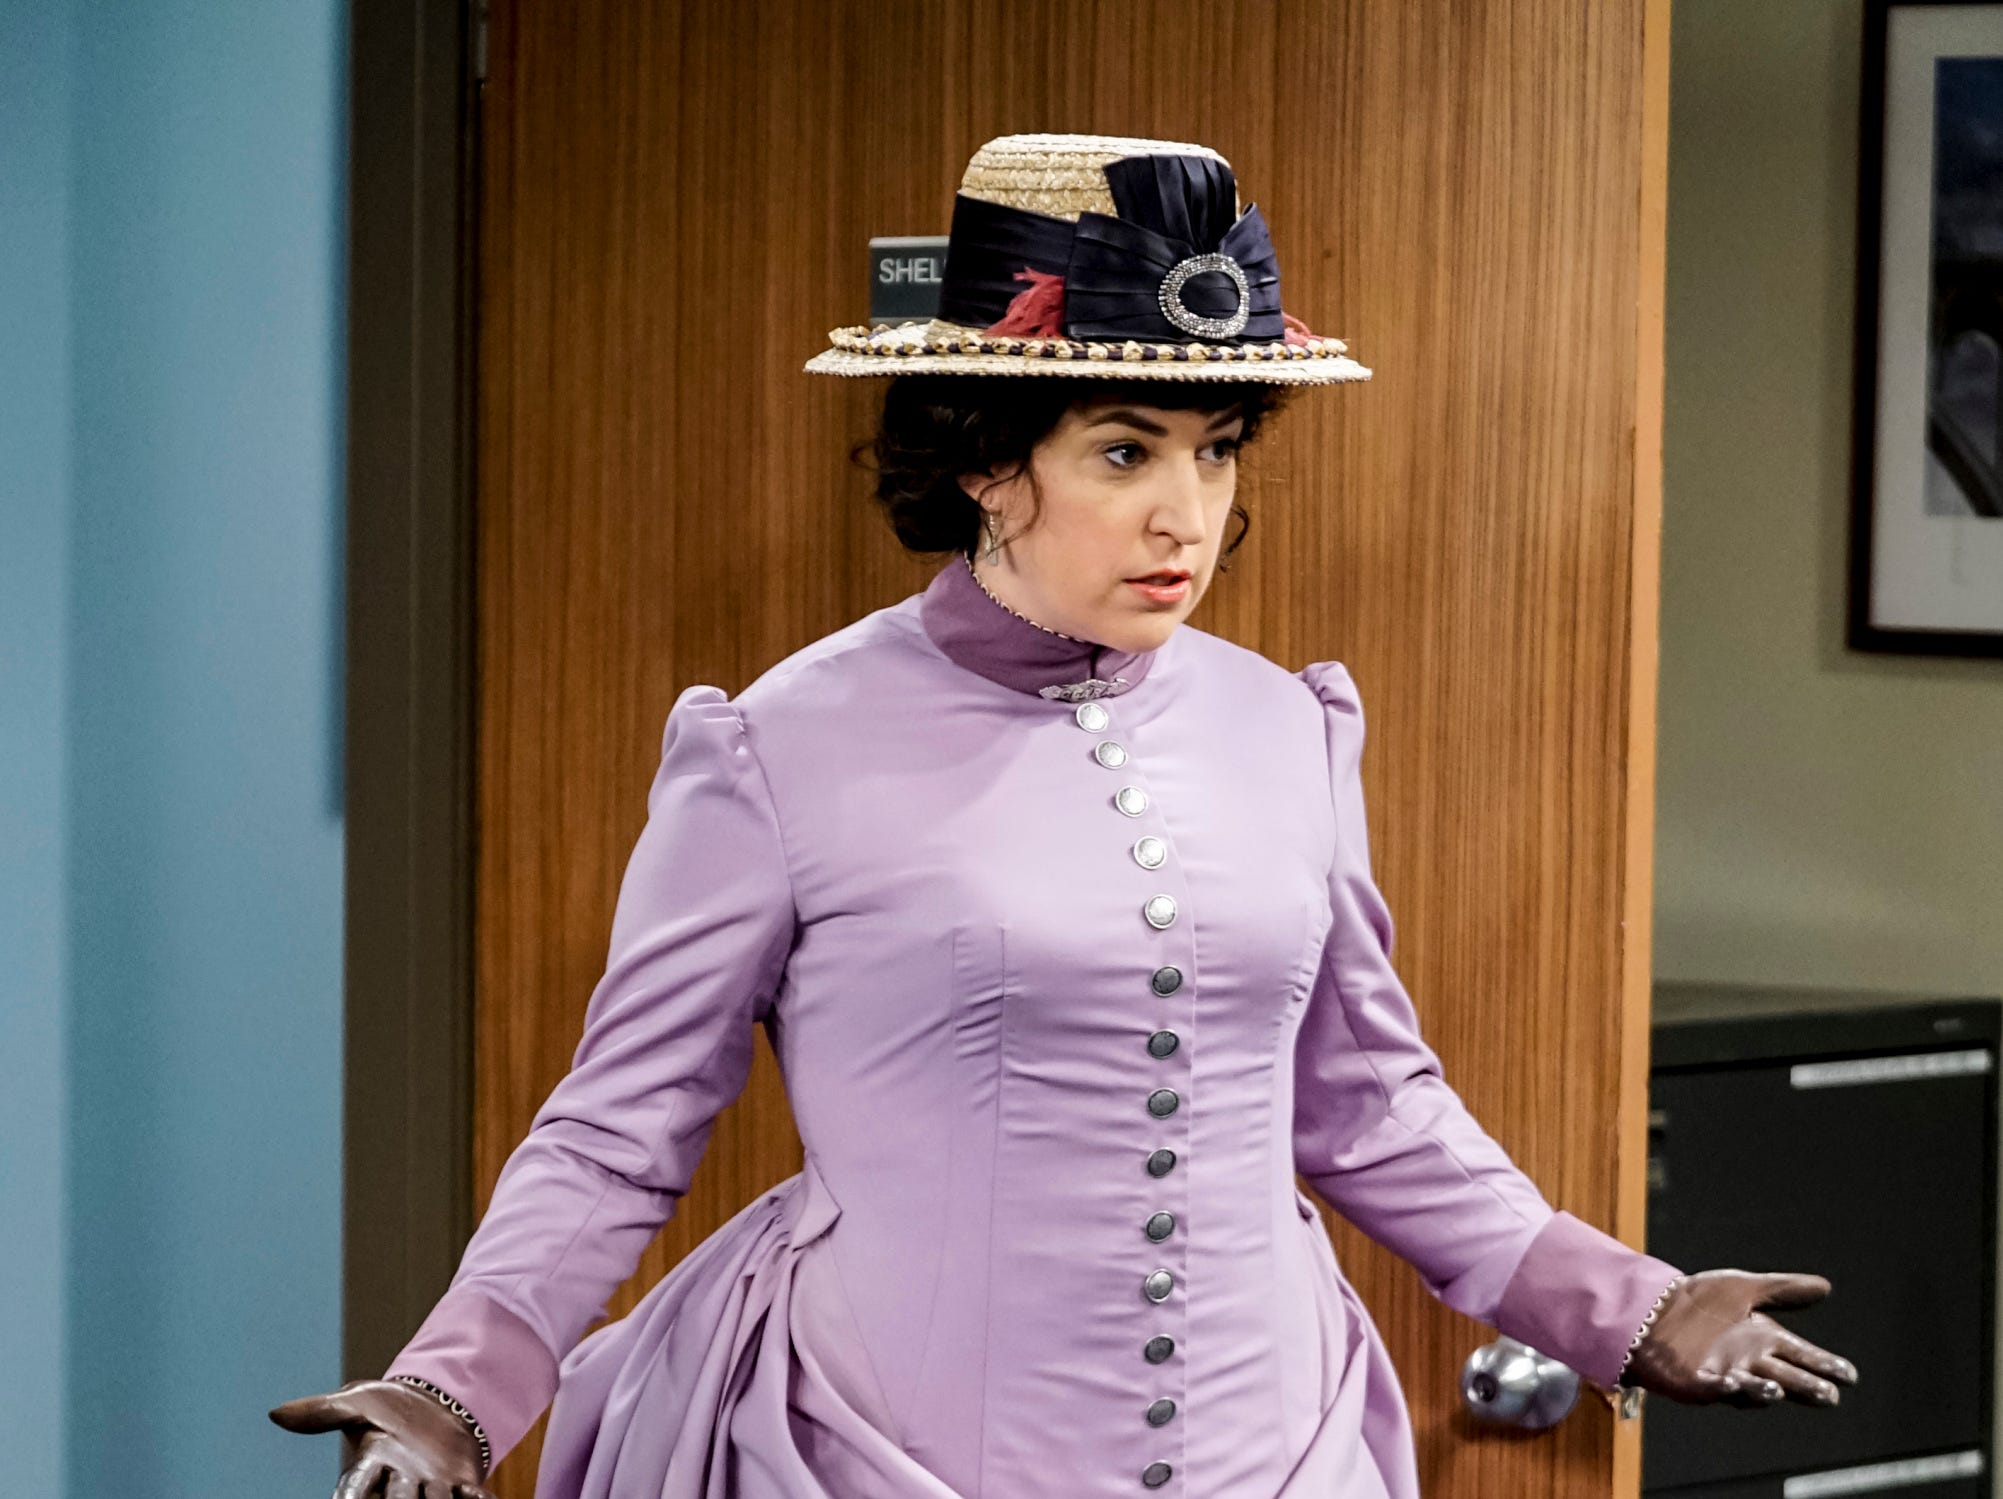 Perhaps Amy (Mayim Bialik) can salvage the day in her more traditional costume.